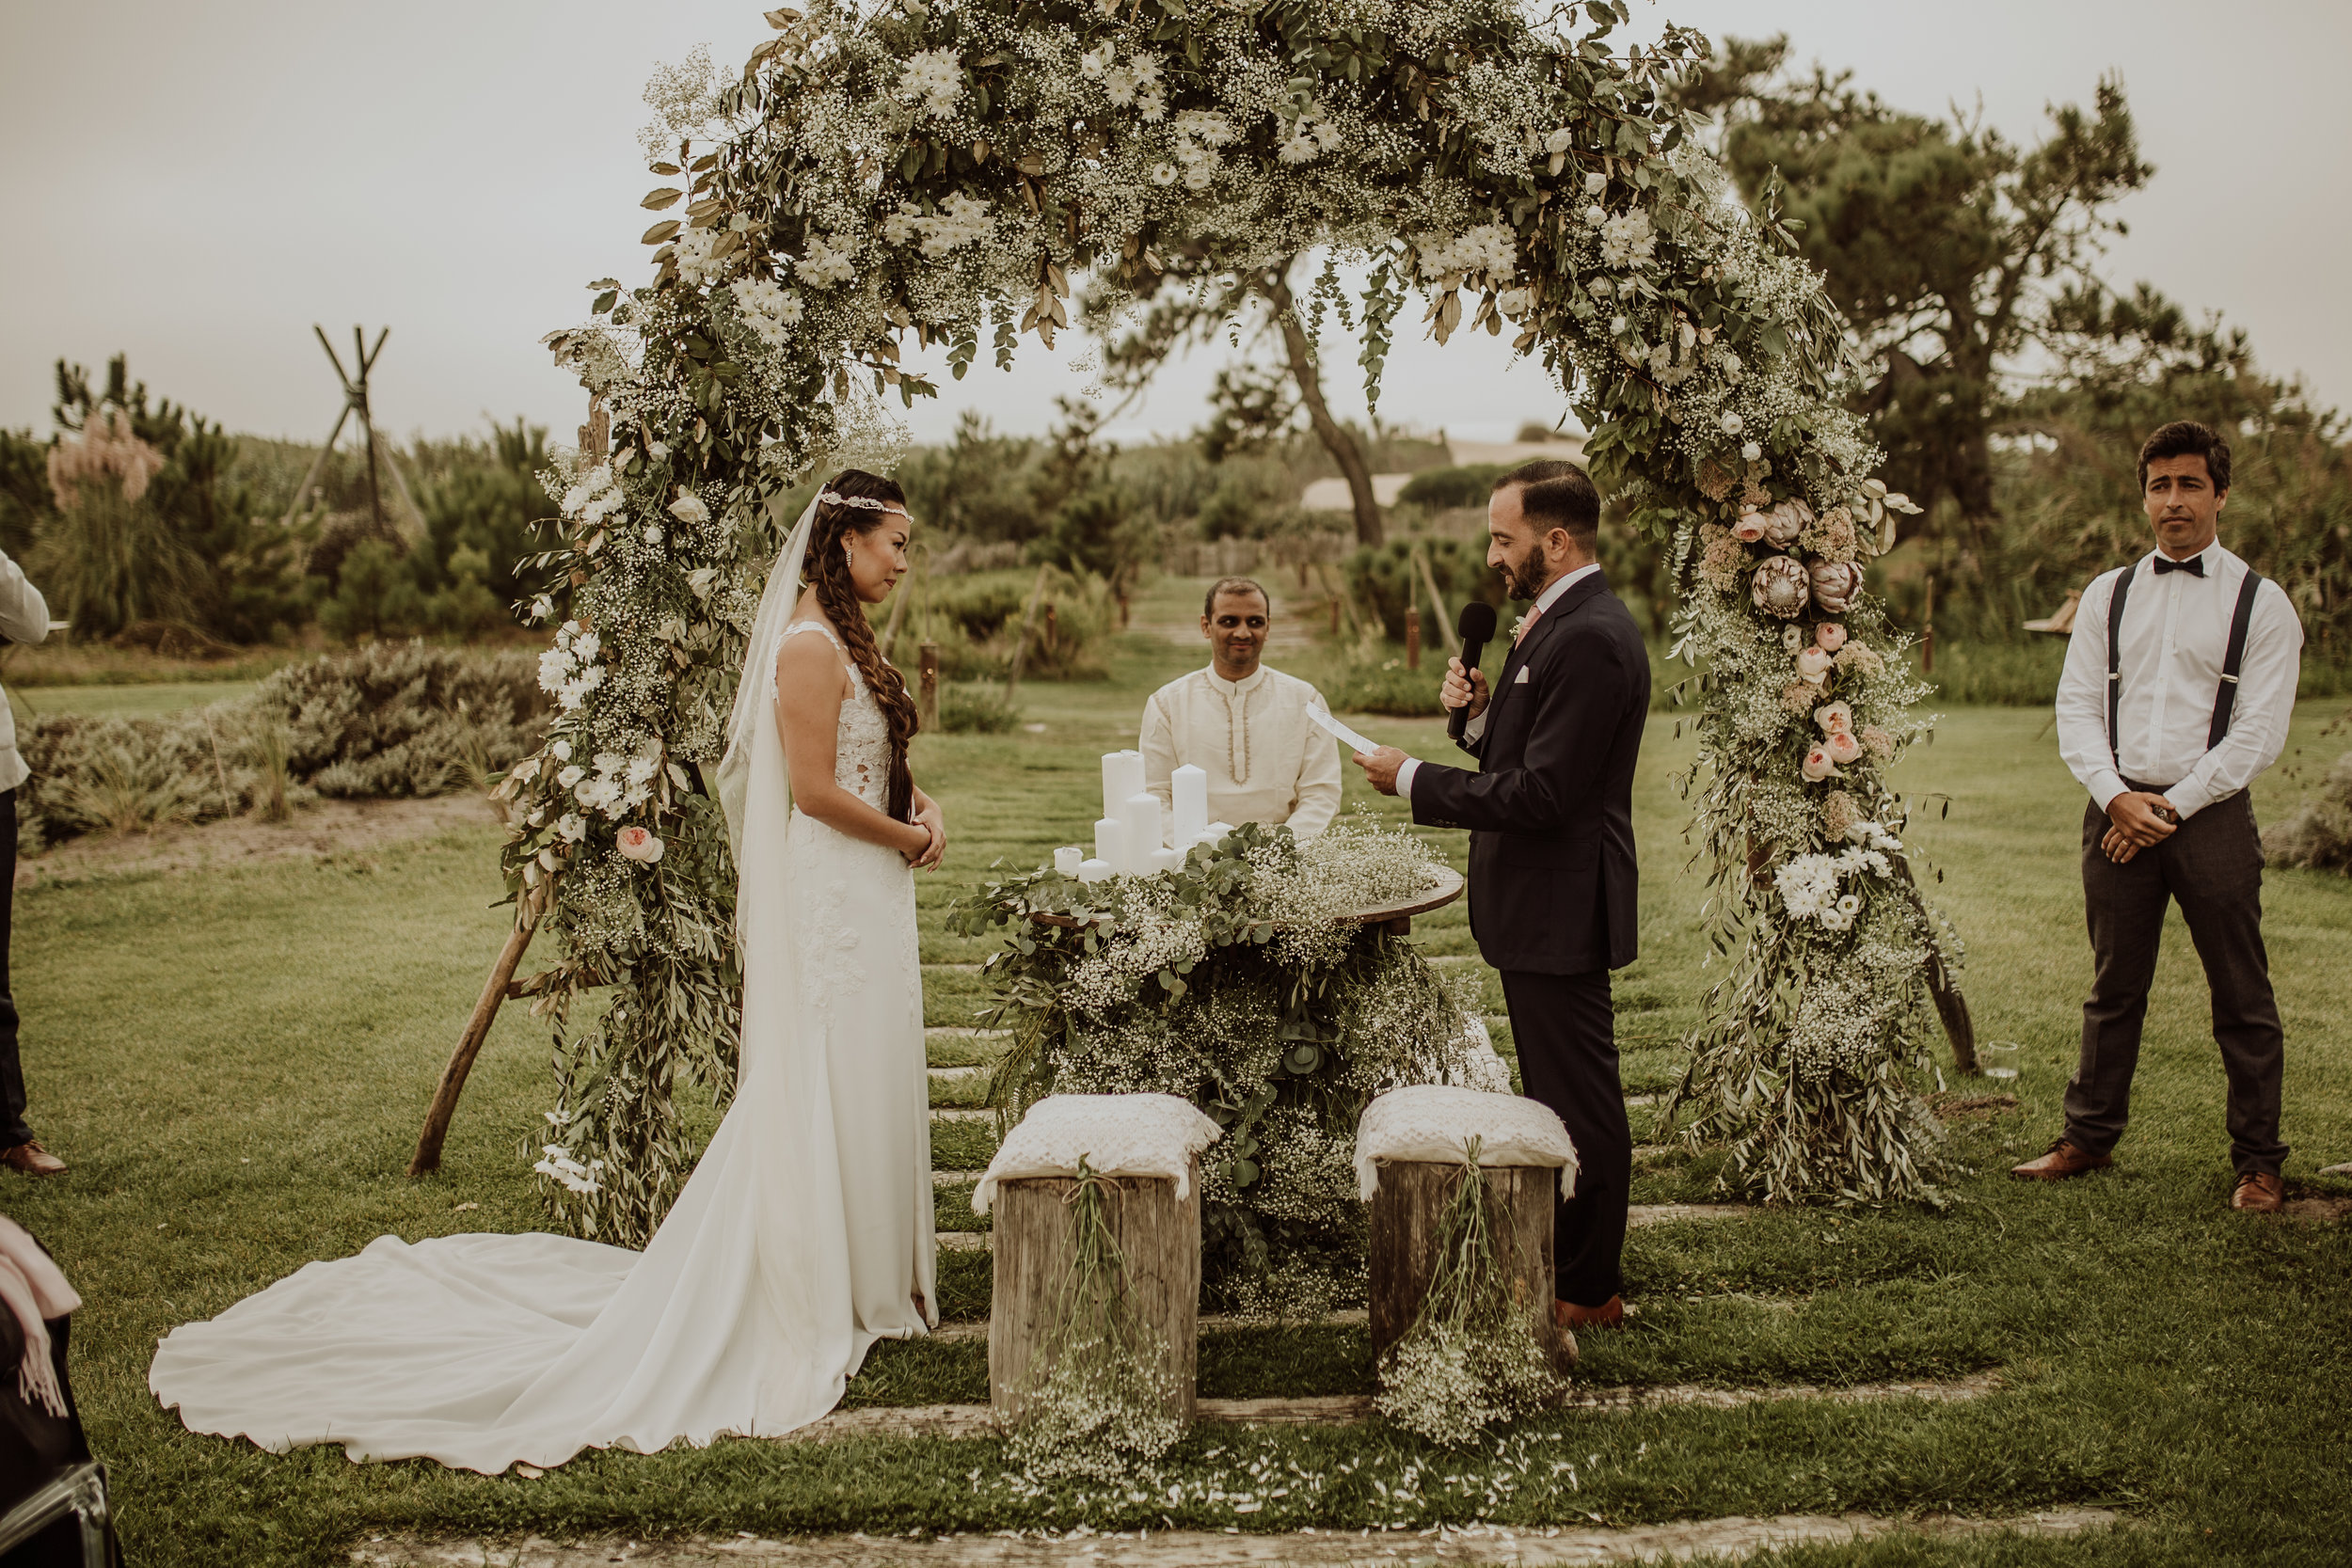 Y&M_648_15_September_2018WEDDING_DAY.jpg